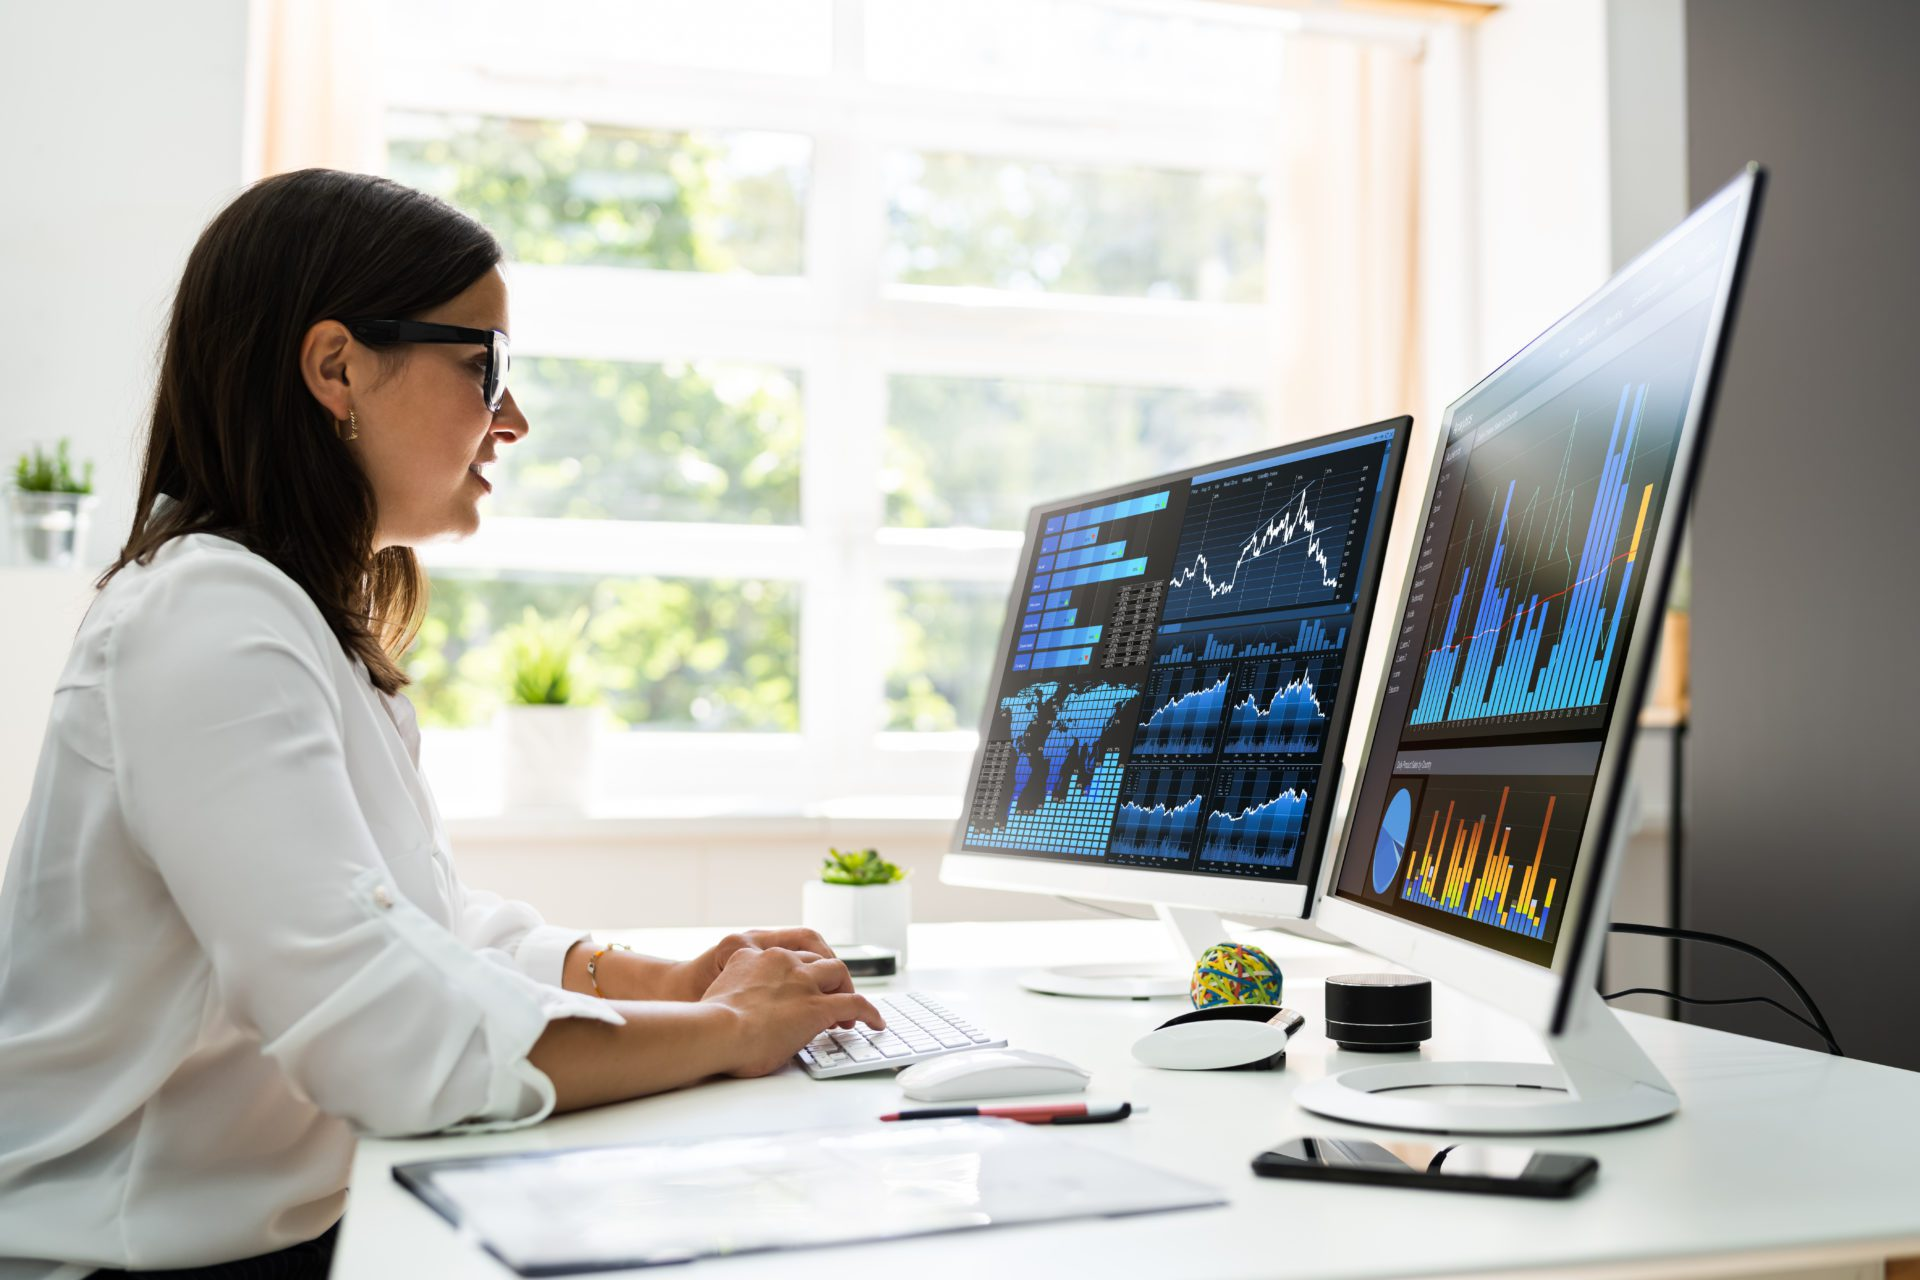 Analyst Women Looking At Data On Computer Screen